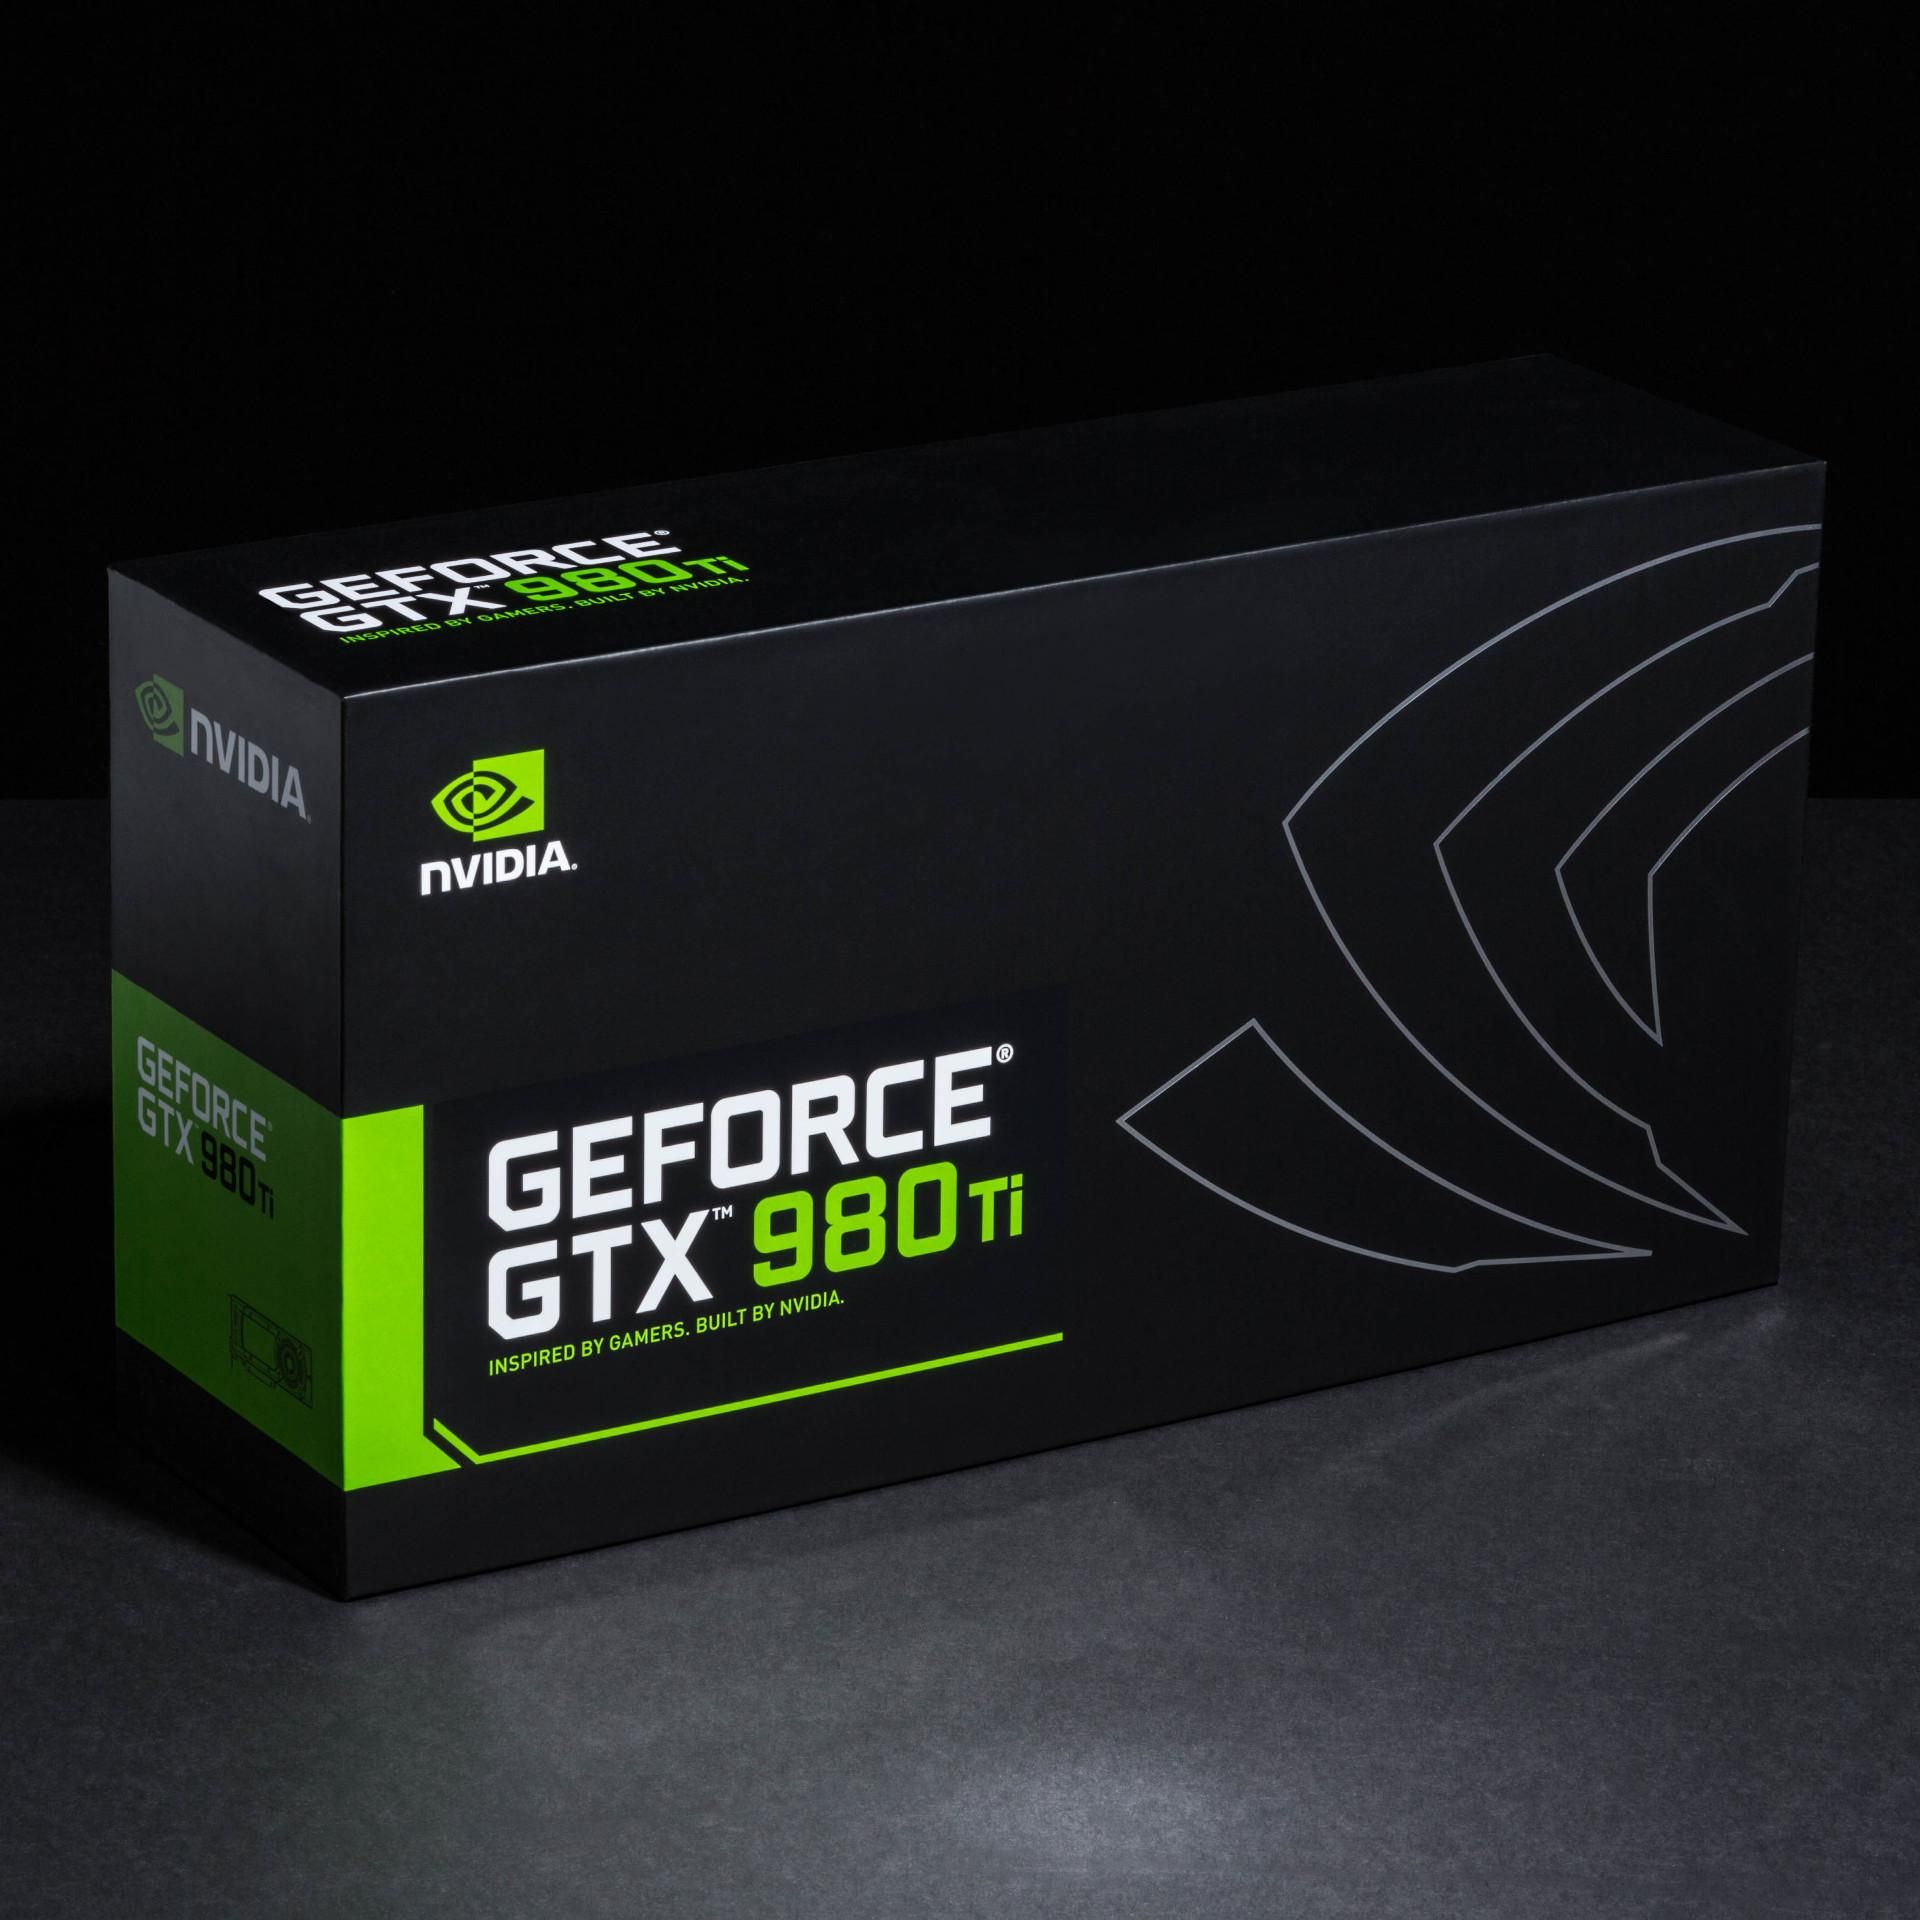 NVIDIA GTX 980 Ti arrives with 4K, VR, DirectX 12 in tow